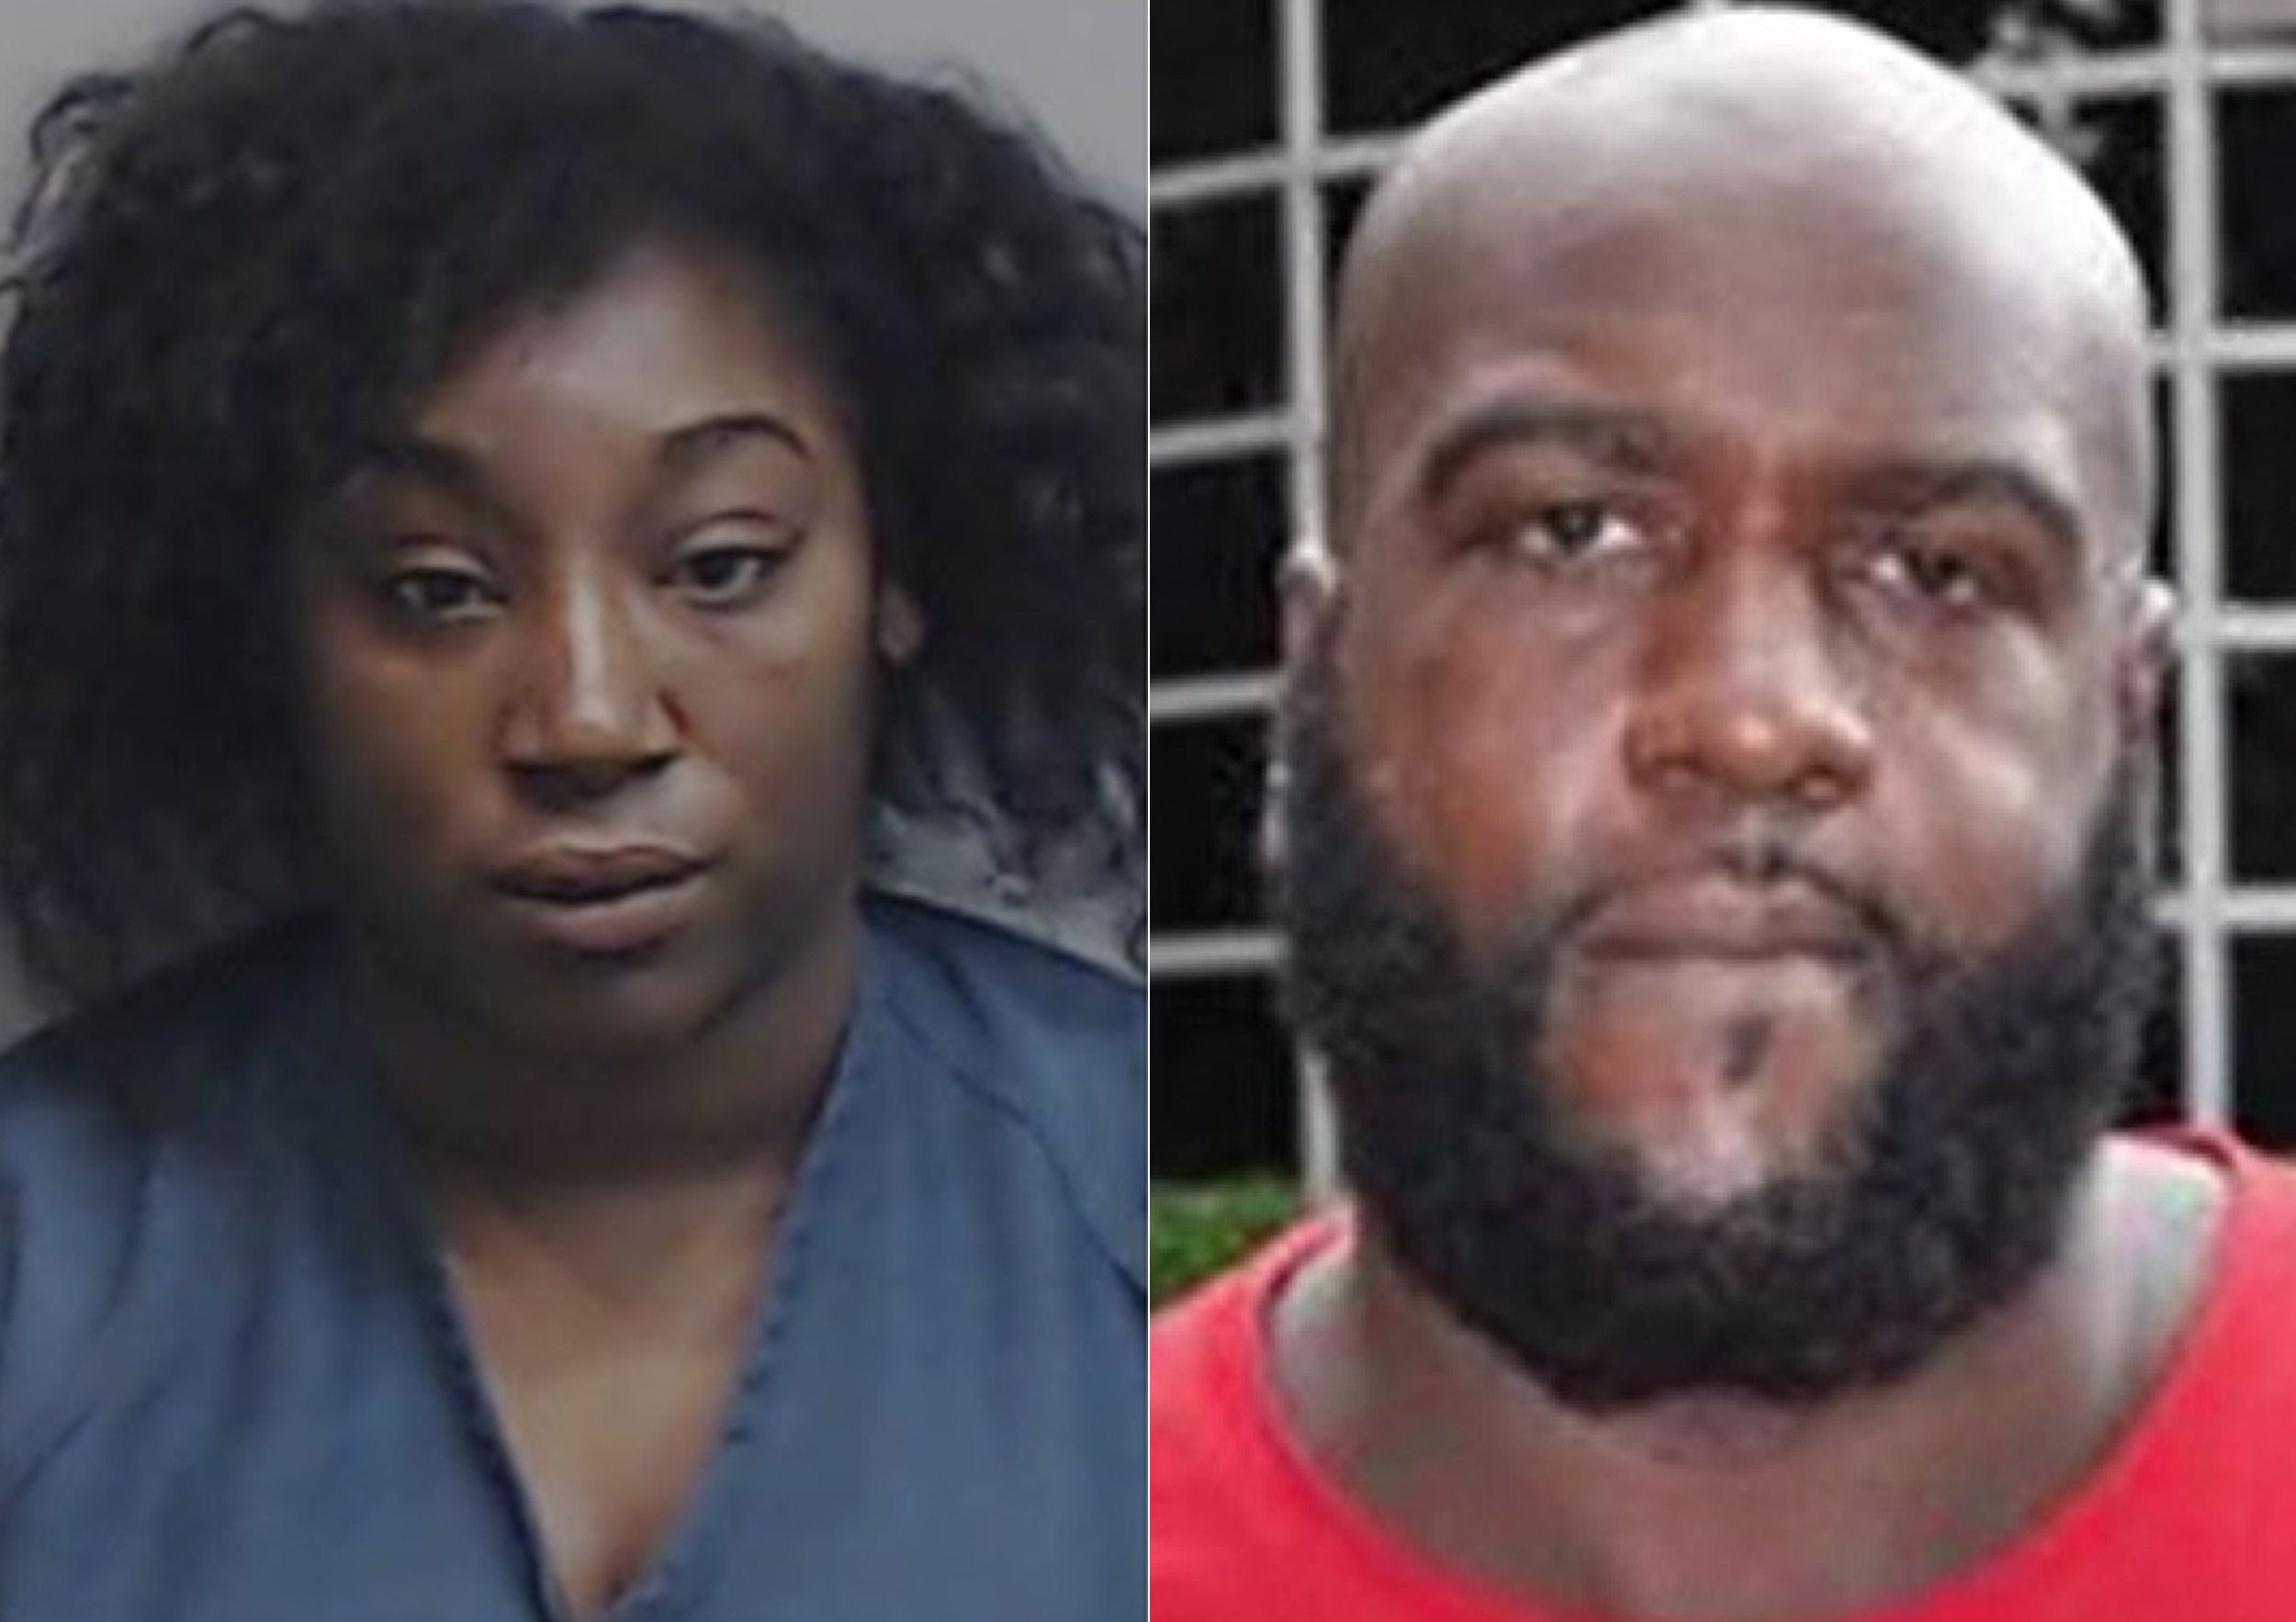 Federal authorities are reportedly investigating Dominique Berry, left, and RandySchenck, right.